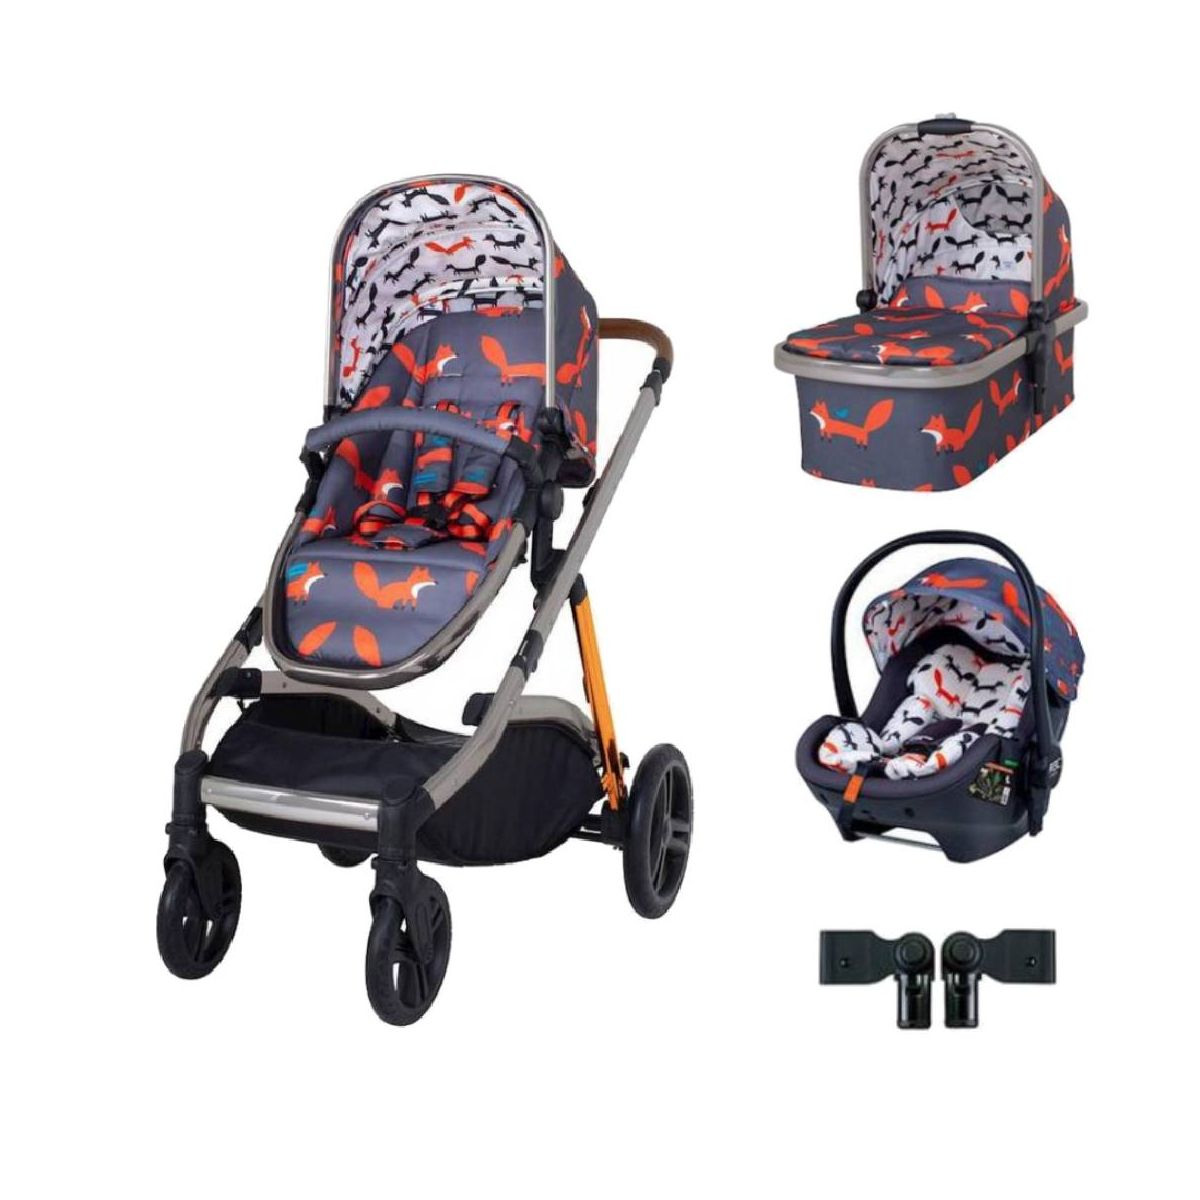 Cosatto Wow XL Premium Travel System Bundle-Charcoal Mister Fox